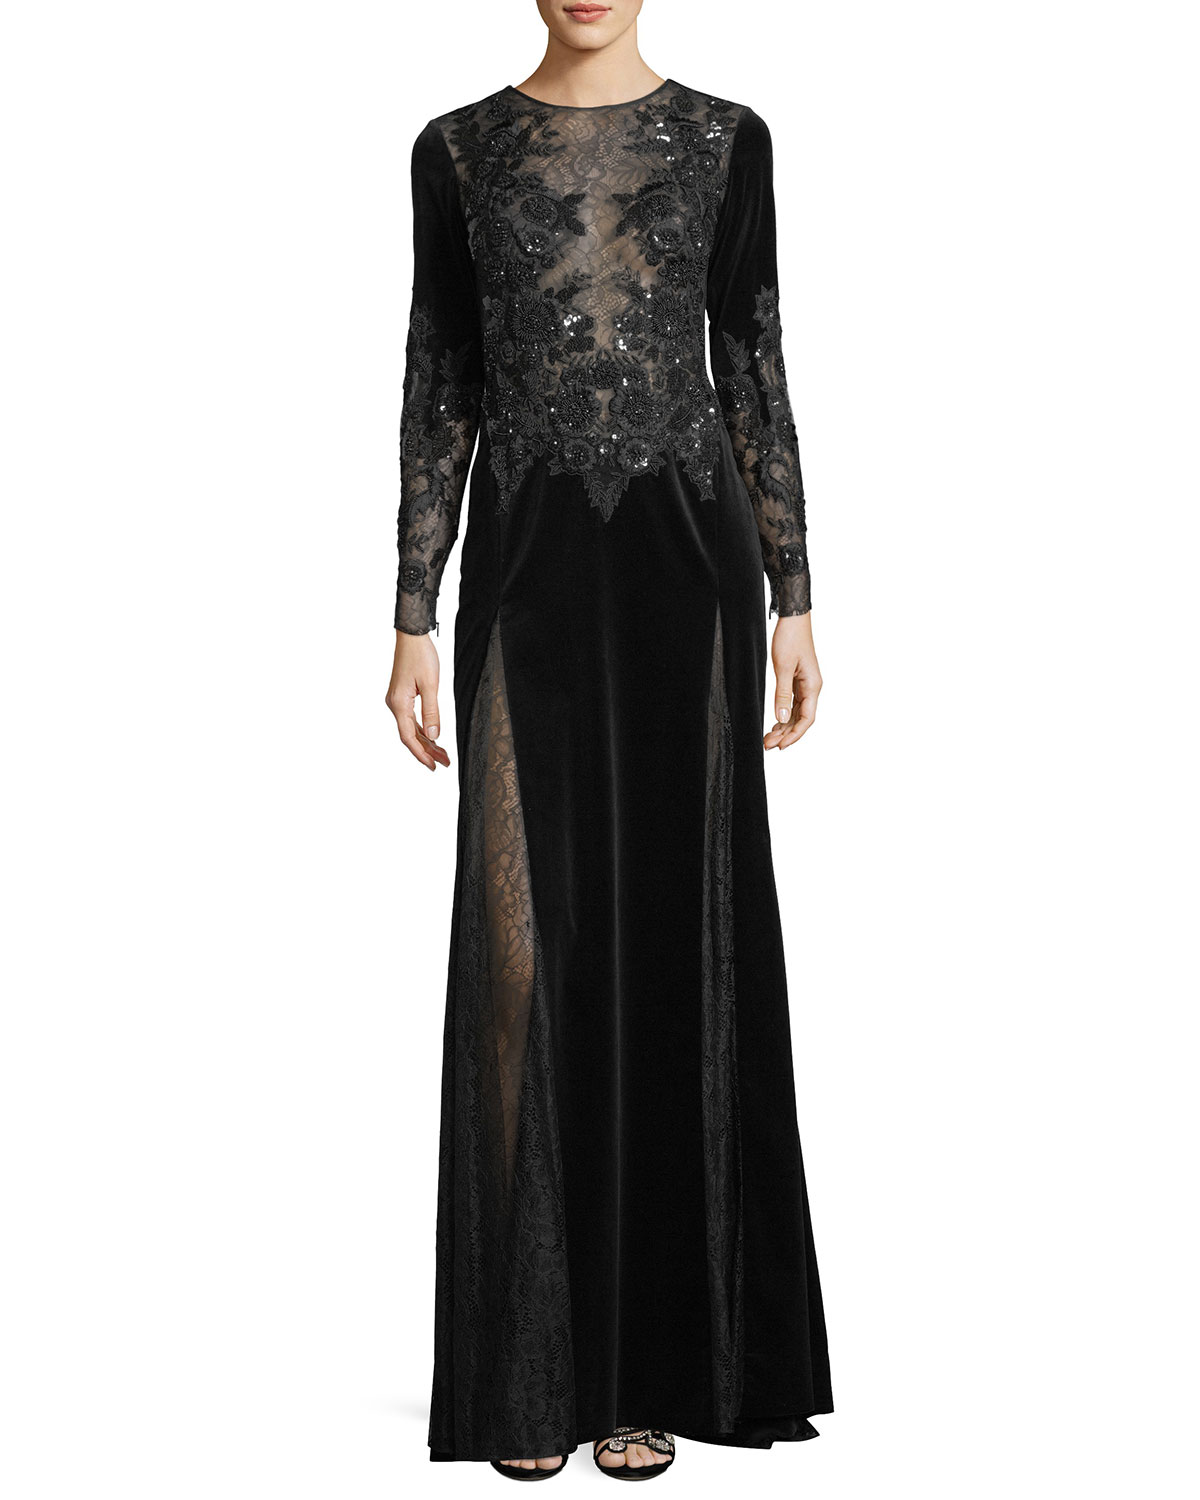 Zuhair Murad Long Sleeve Embroidered Velvet Evening Gown With Lace